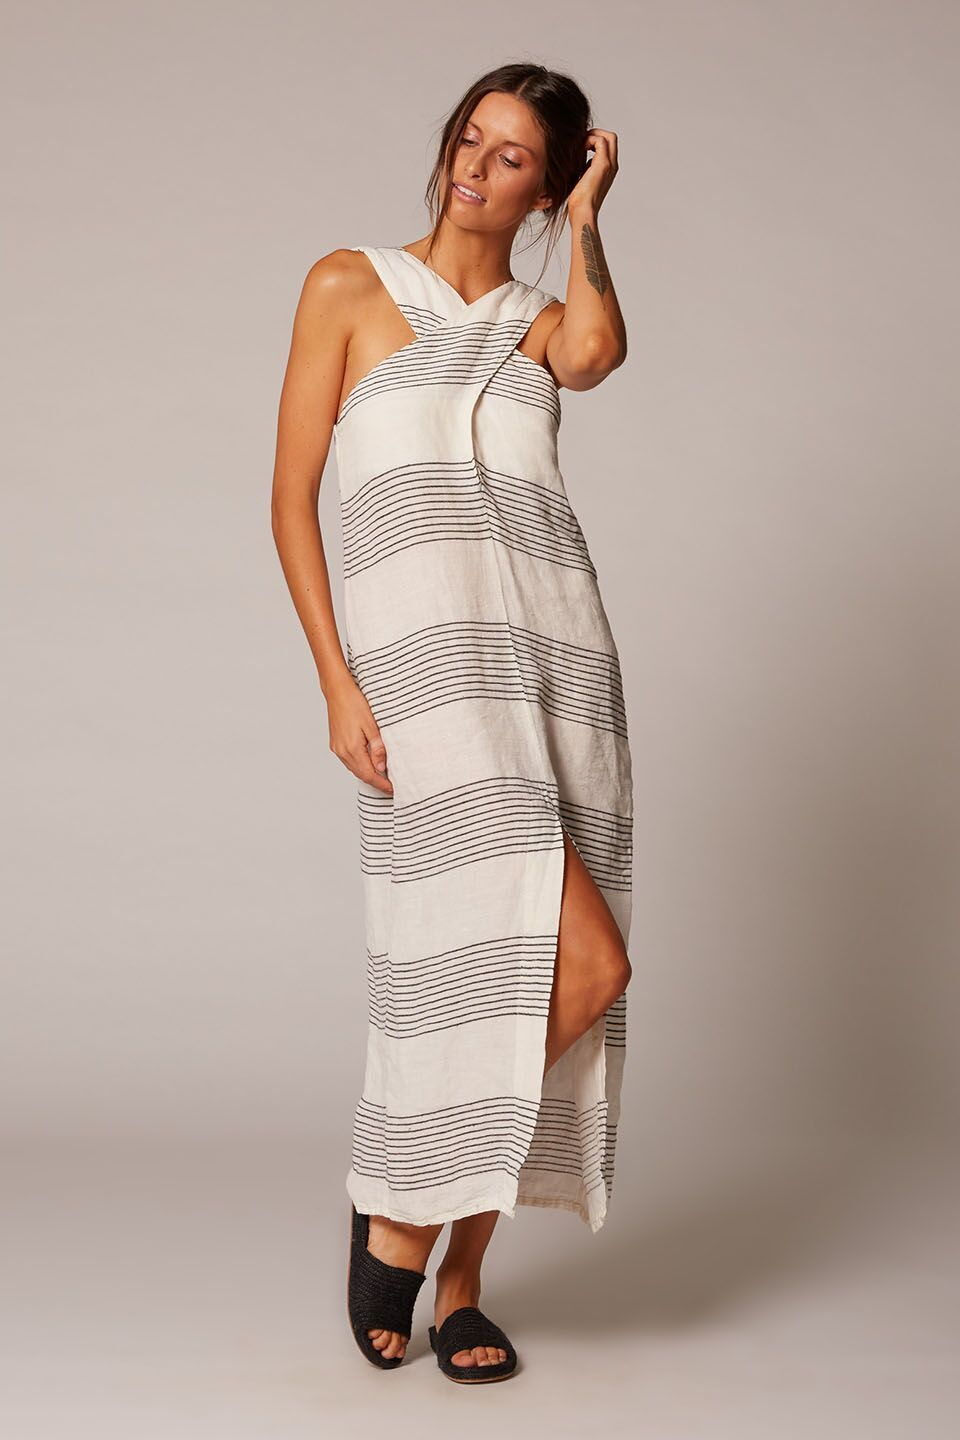 Estilo Emporio | Lola Linen Dress | Stripe